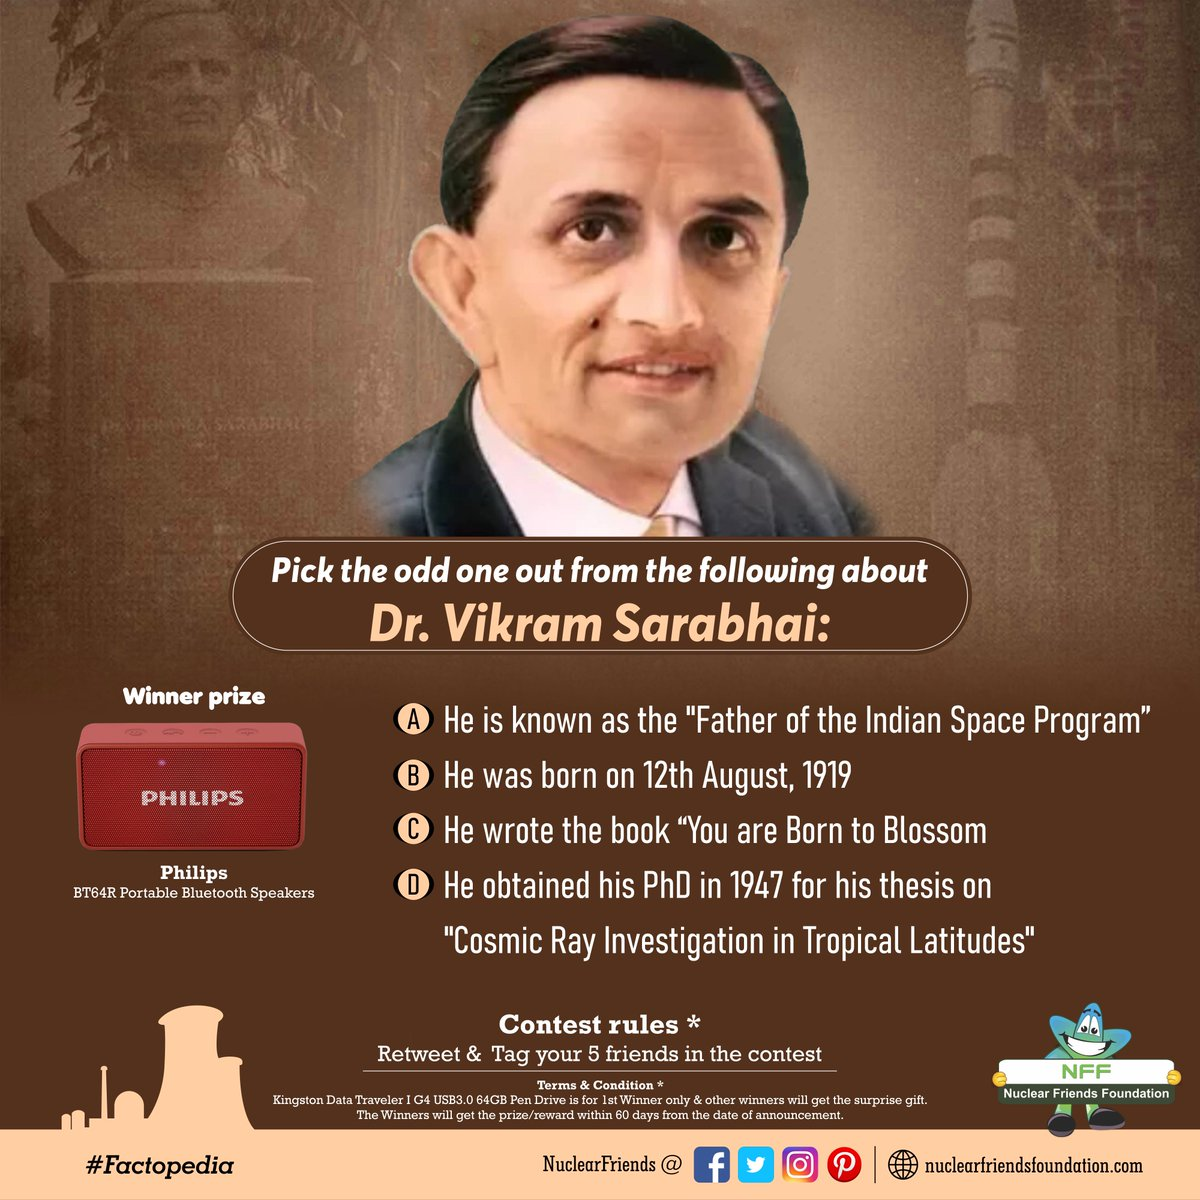 #ContestAlert Pick the odd one out from the following about Dr. Vikram Sarabhai:  Reach us @ http://nuclearfriendsfoundation.com  #Contest #like #RT#comment #chance #Win #prizes #Today #goodluck #competition  #ContestEntry #entertowin  #TuesdayMotivation #TuesdayThoughts @india4contests